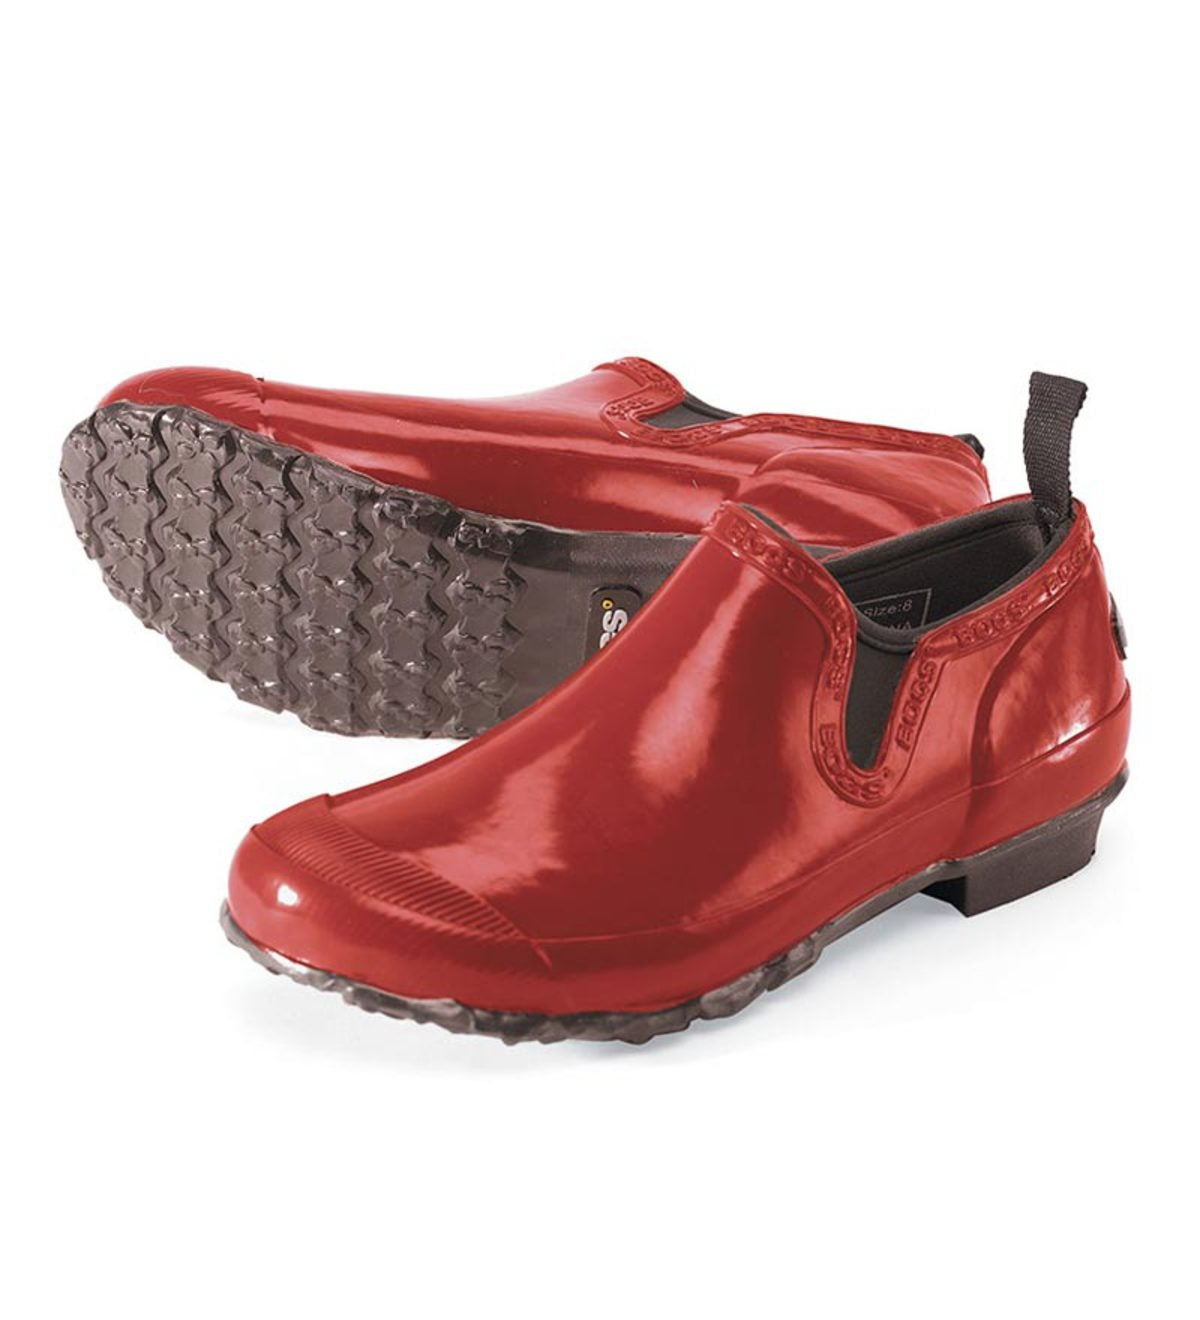 Rue Shoe - Red - Size 10